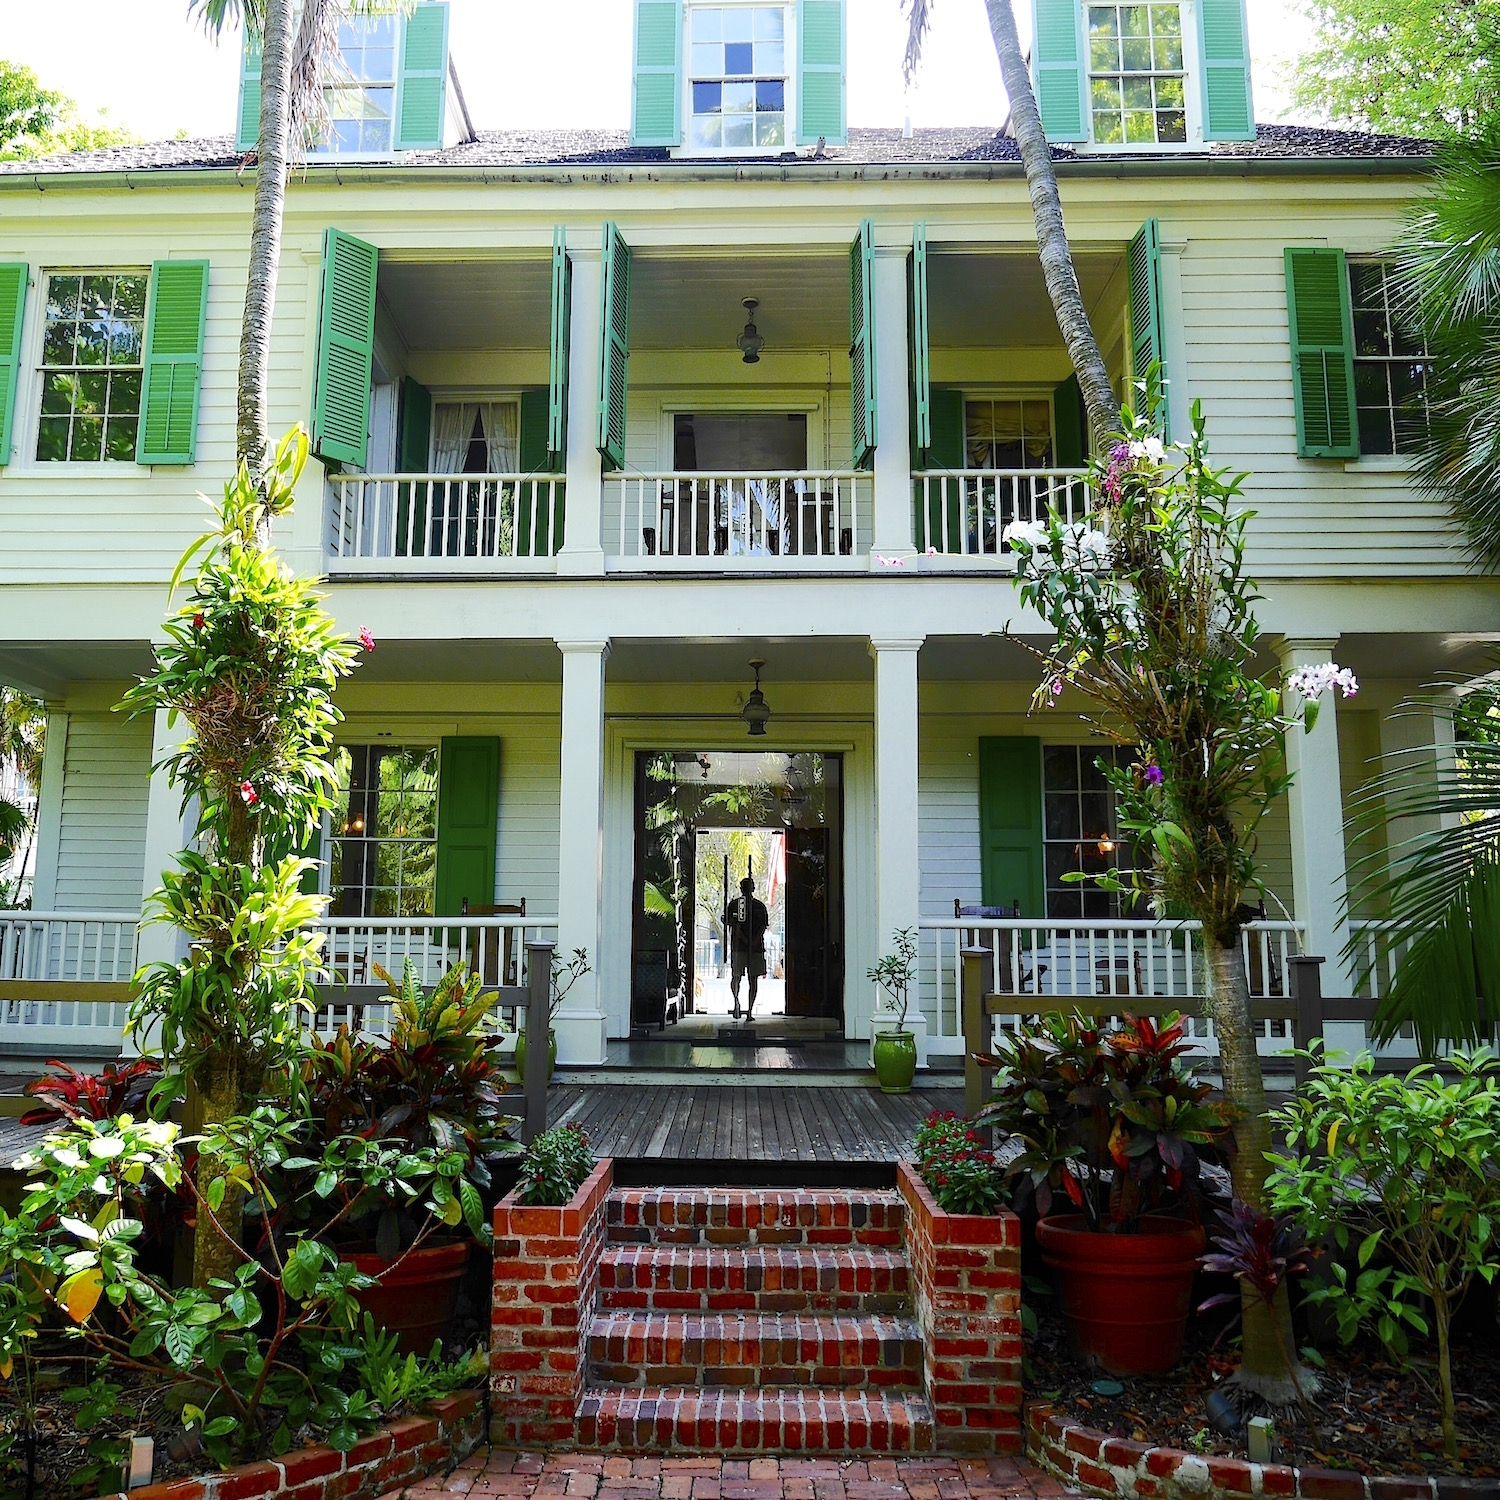 Fascinating Key West History At The Audubon House & Tropical Gardens regarding Audubon House And Garden Key West